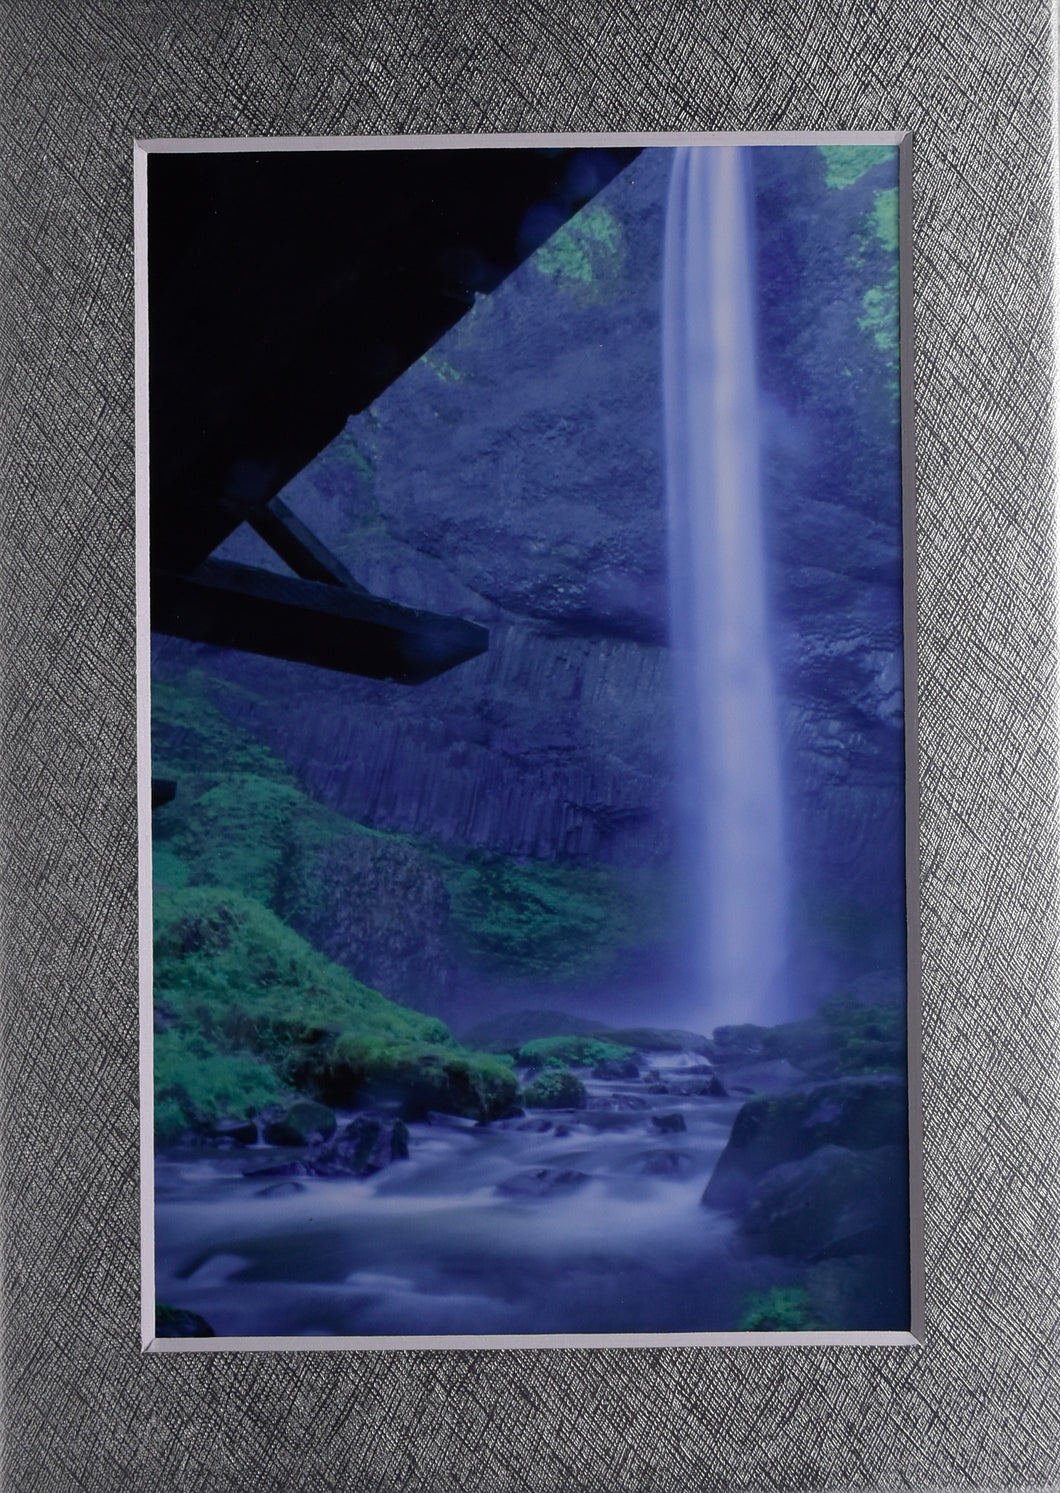 Oregon Waterfall River Landscape Fine Art Photography 5x7 Matted Print